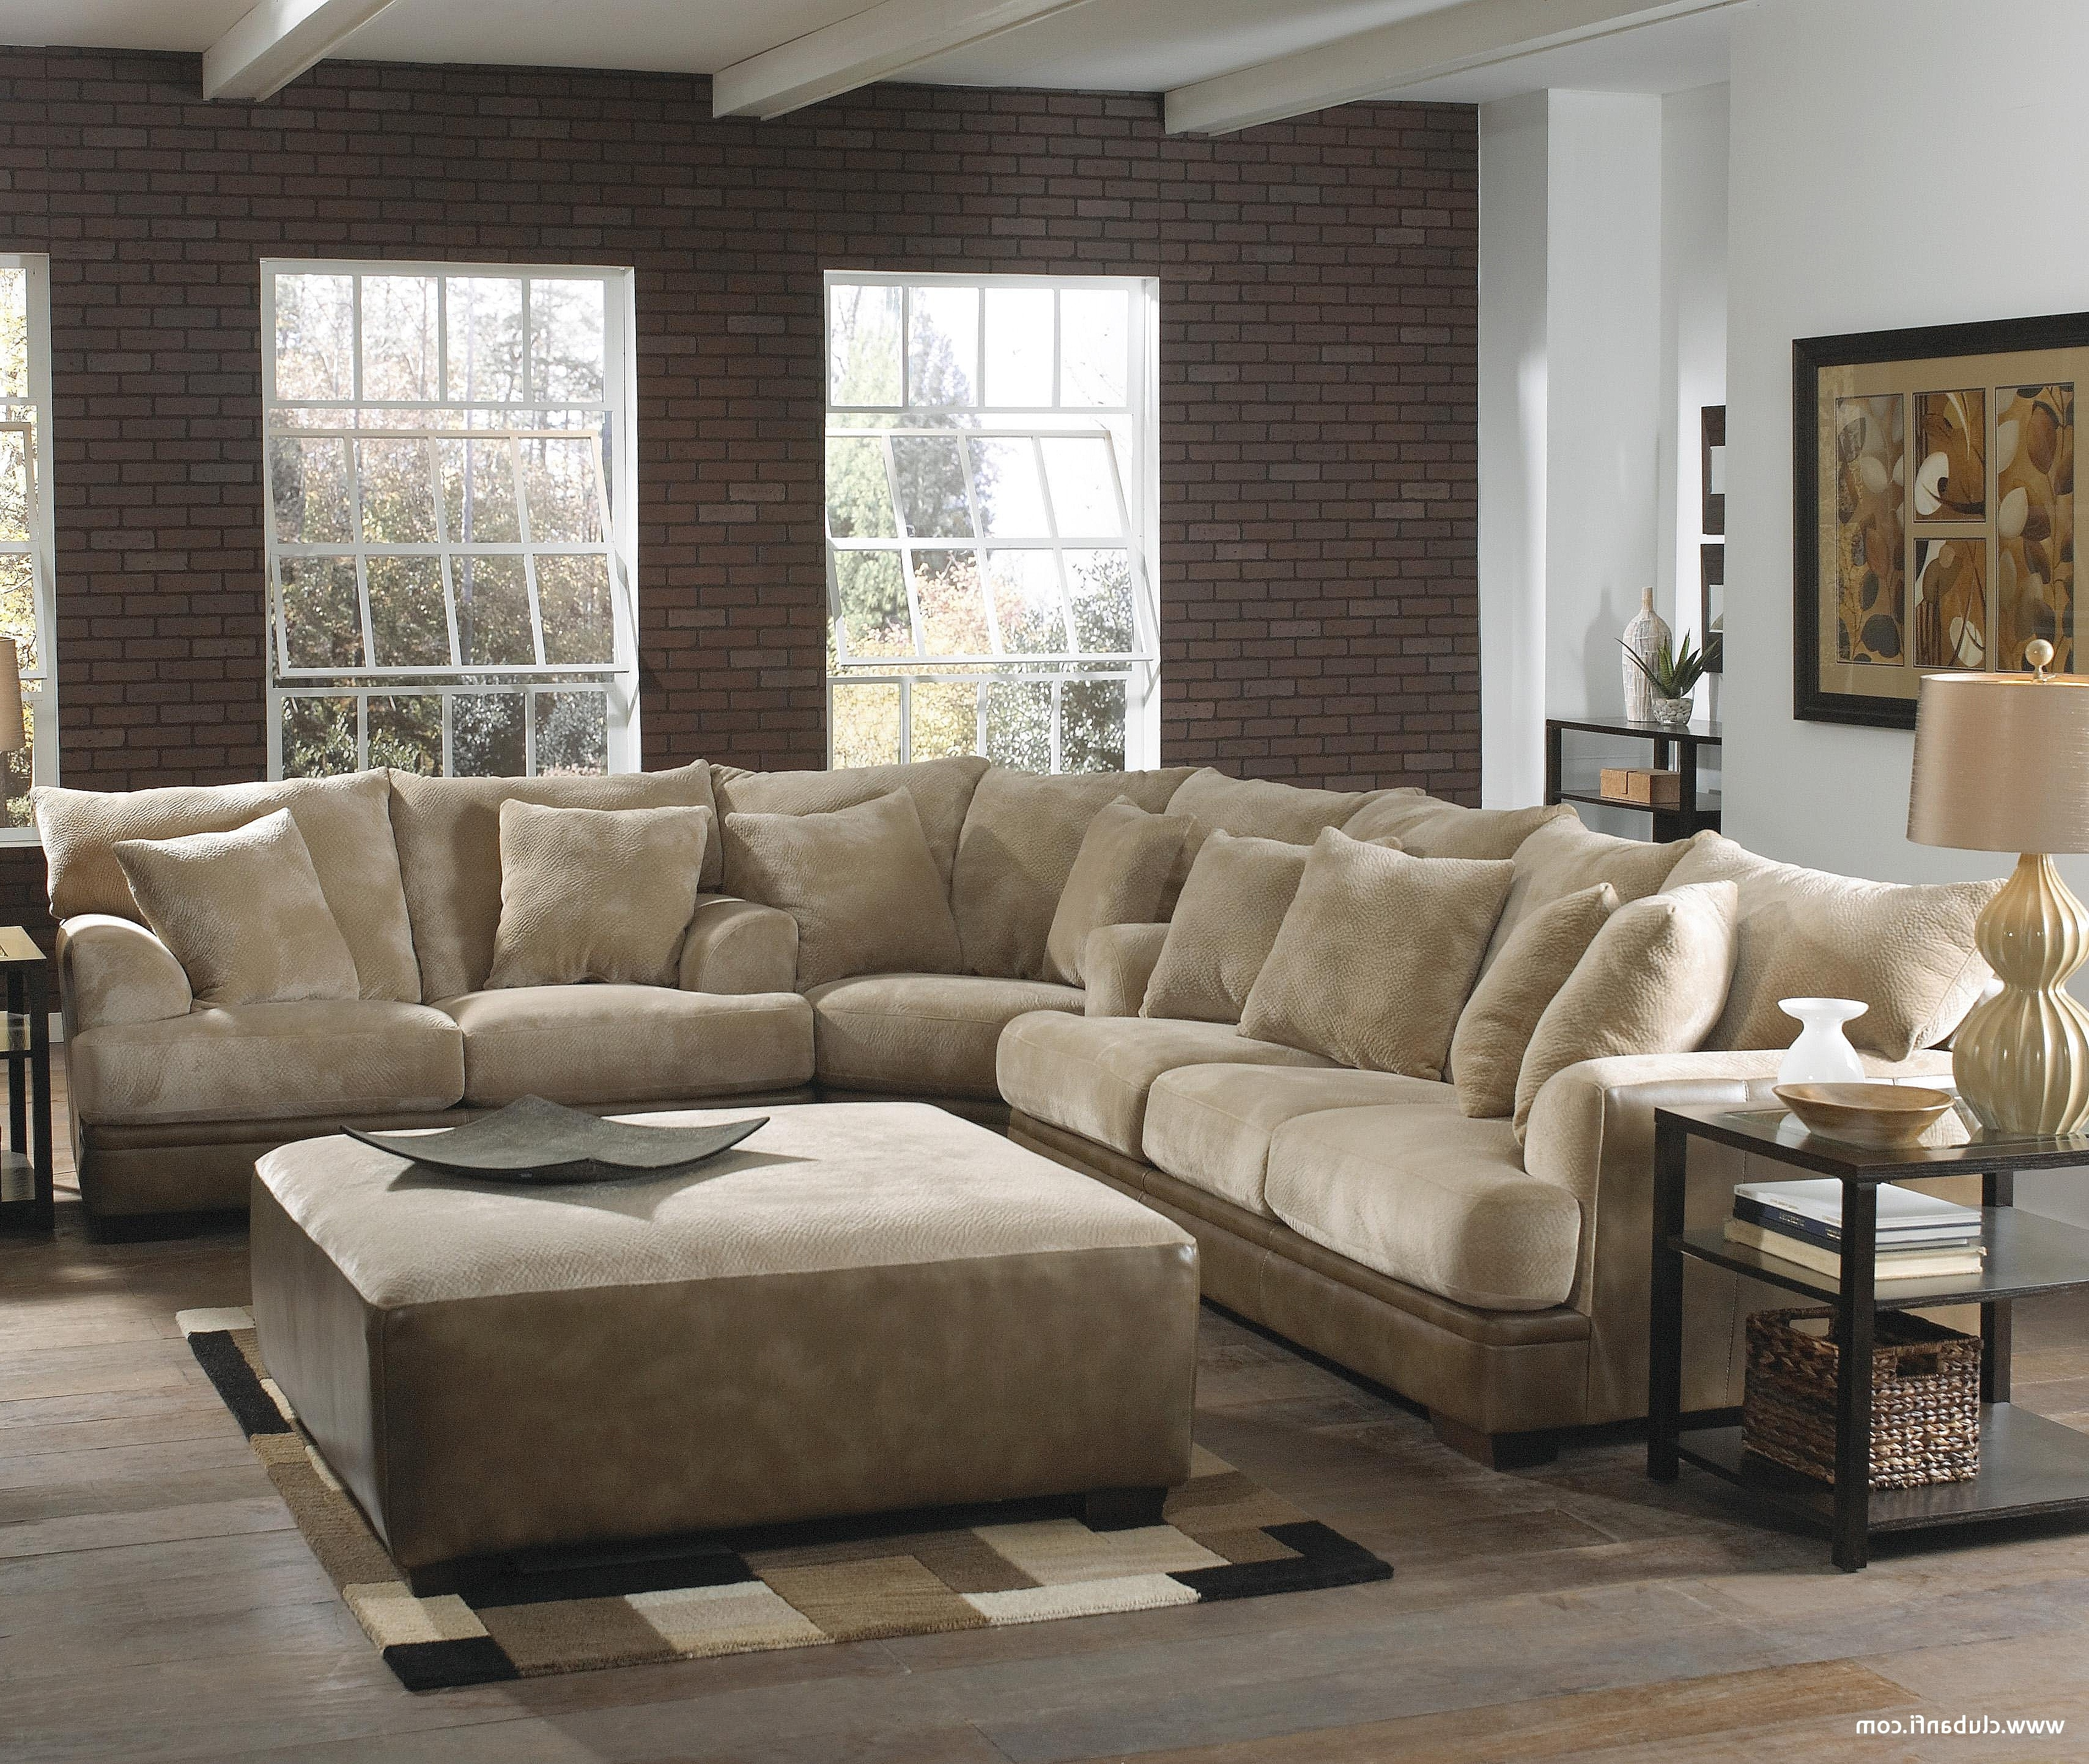 Deep Seating Sectional Sofas In Recent Picture 6 Of 34 – Plush Sectional Sofas Luxury Living Room Deep (View 13 of 20)